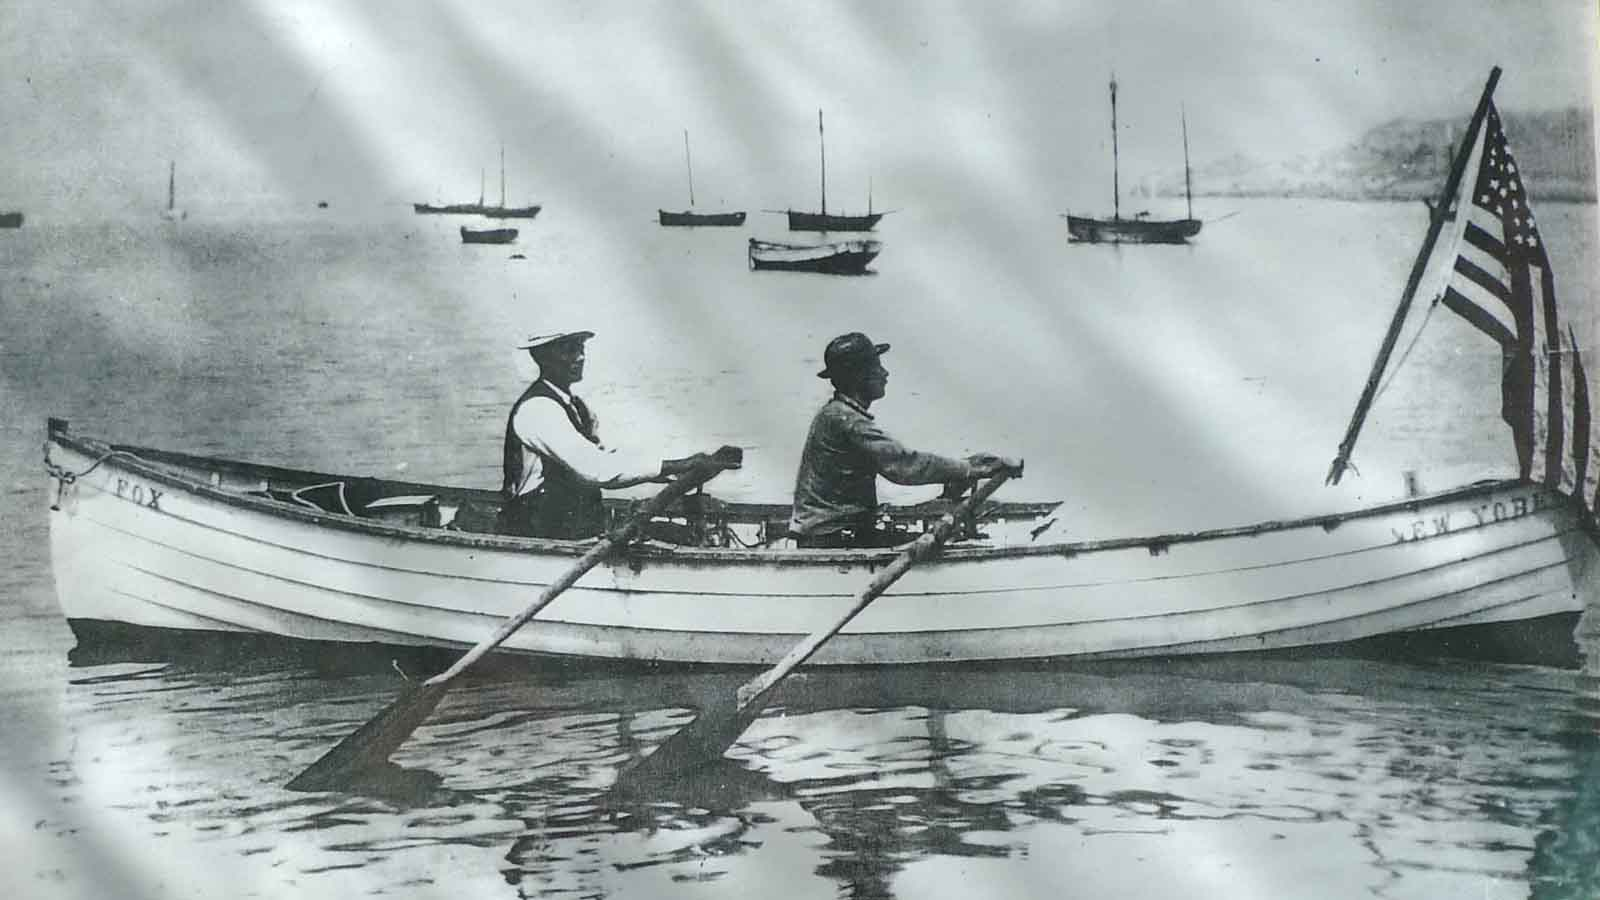 Bill Cameron On The Original Atlantic Rowing Record